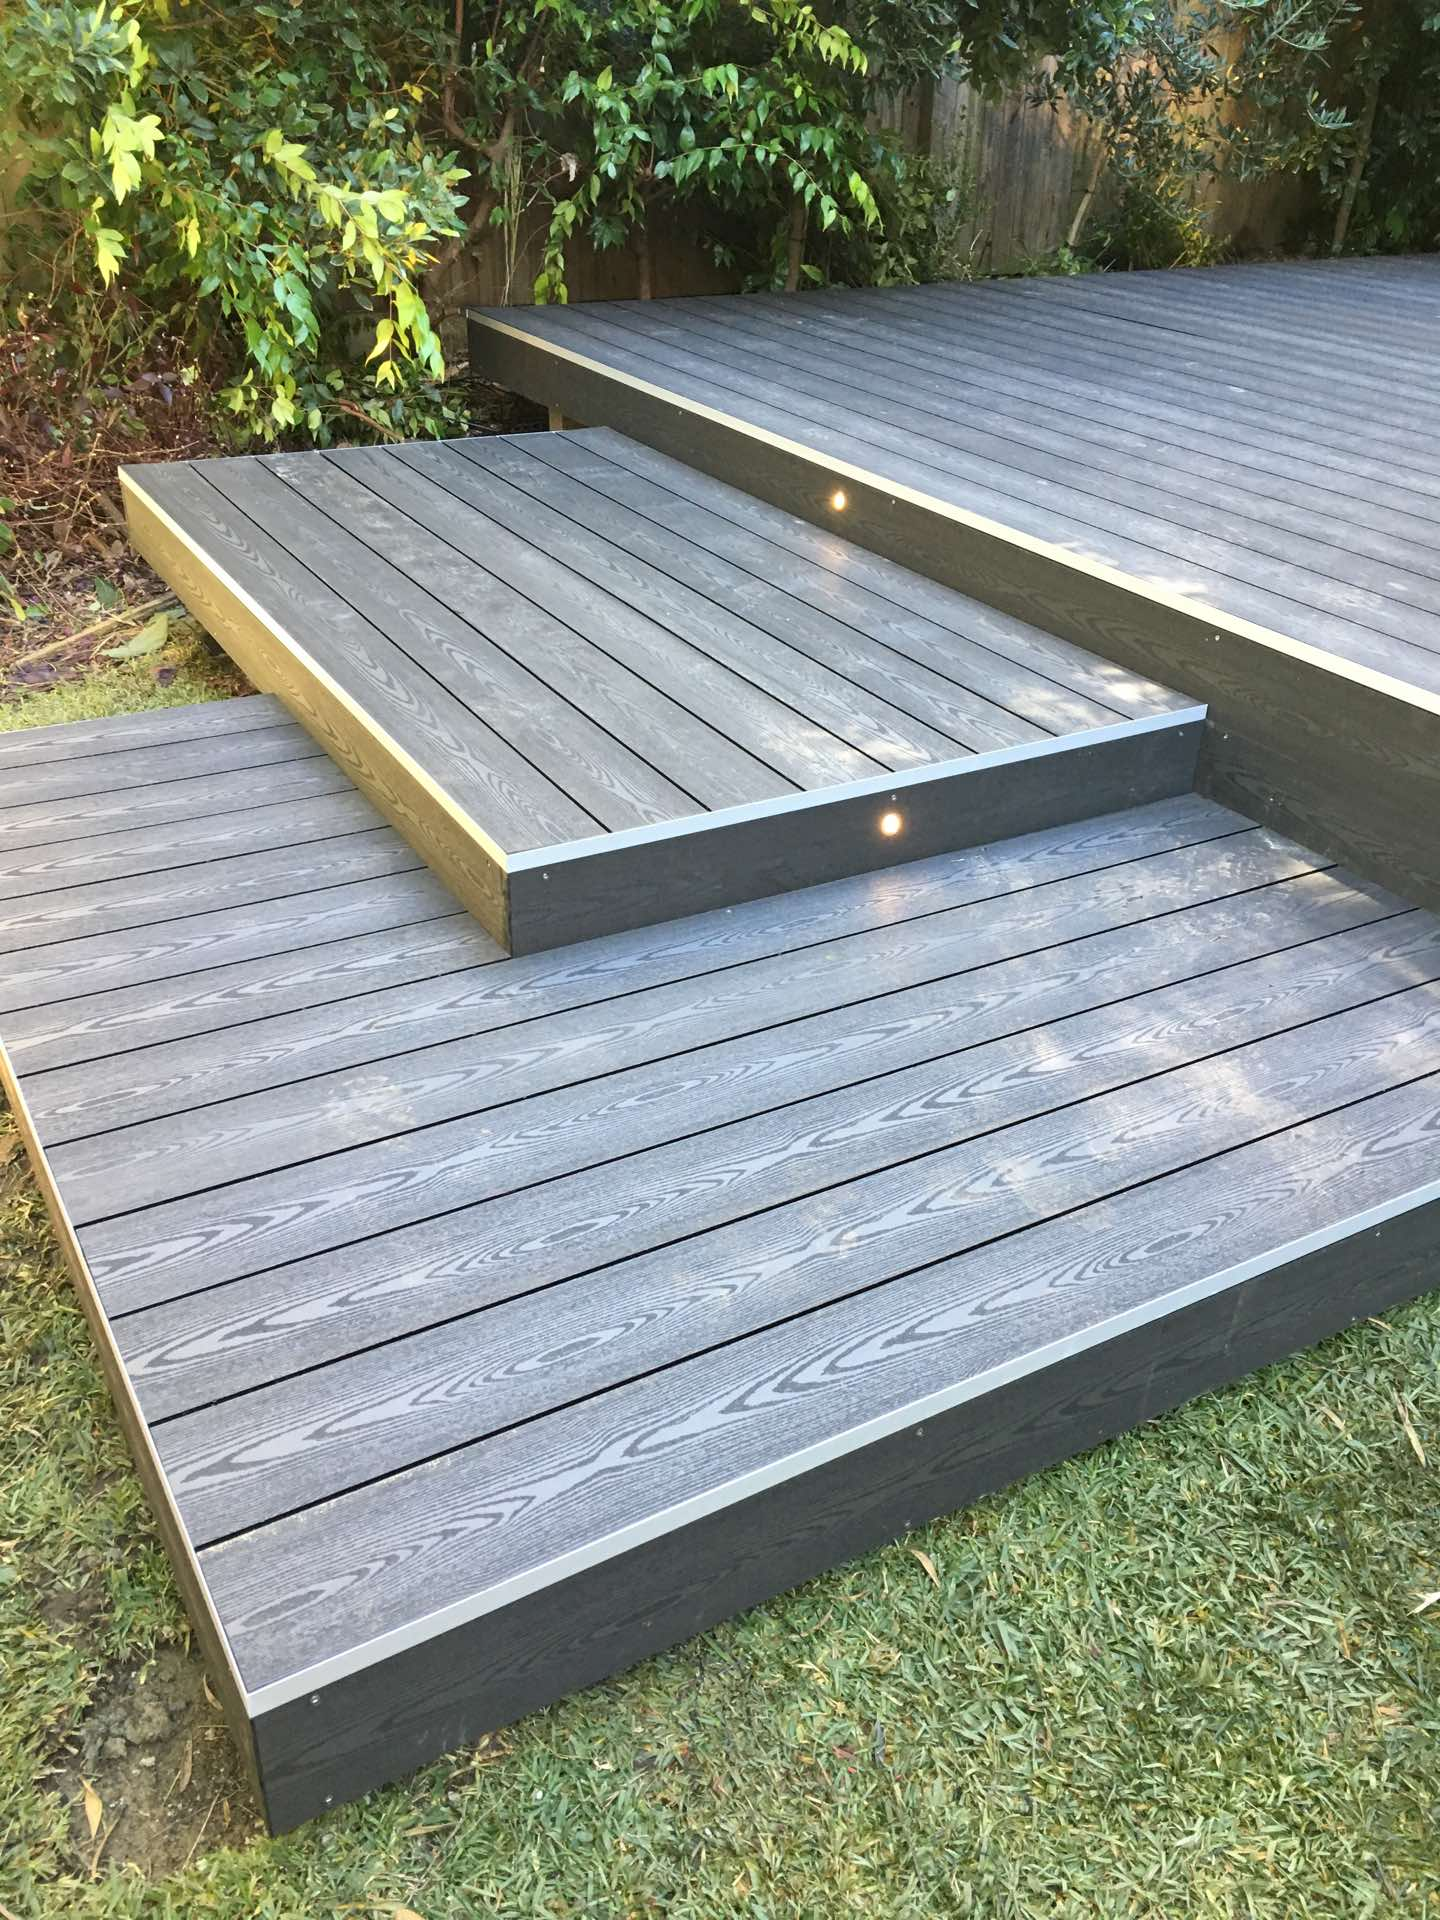 Despite torrential rain and flooding we finished. Finished with a couple of deck and garden lights it's ready to enjoy. Full lengths no joins and everything works full boards Dee Why, NSW